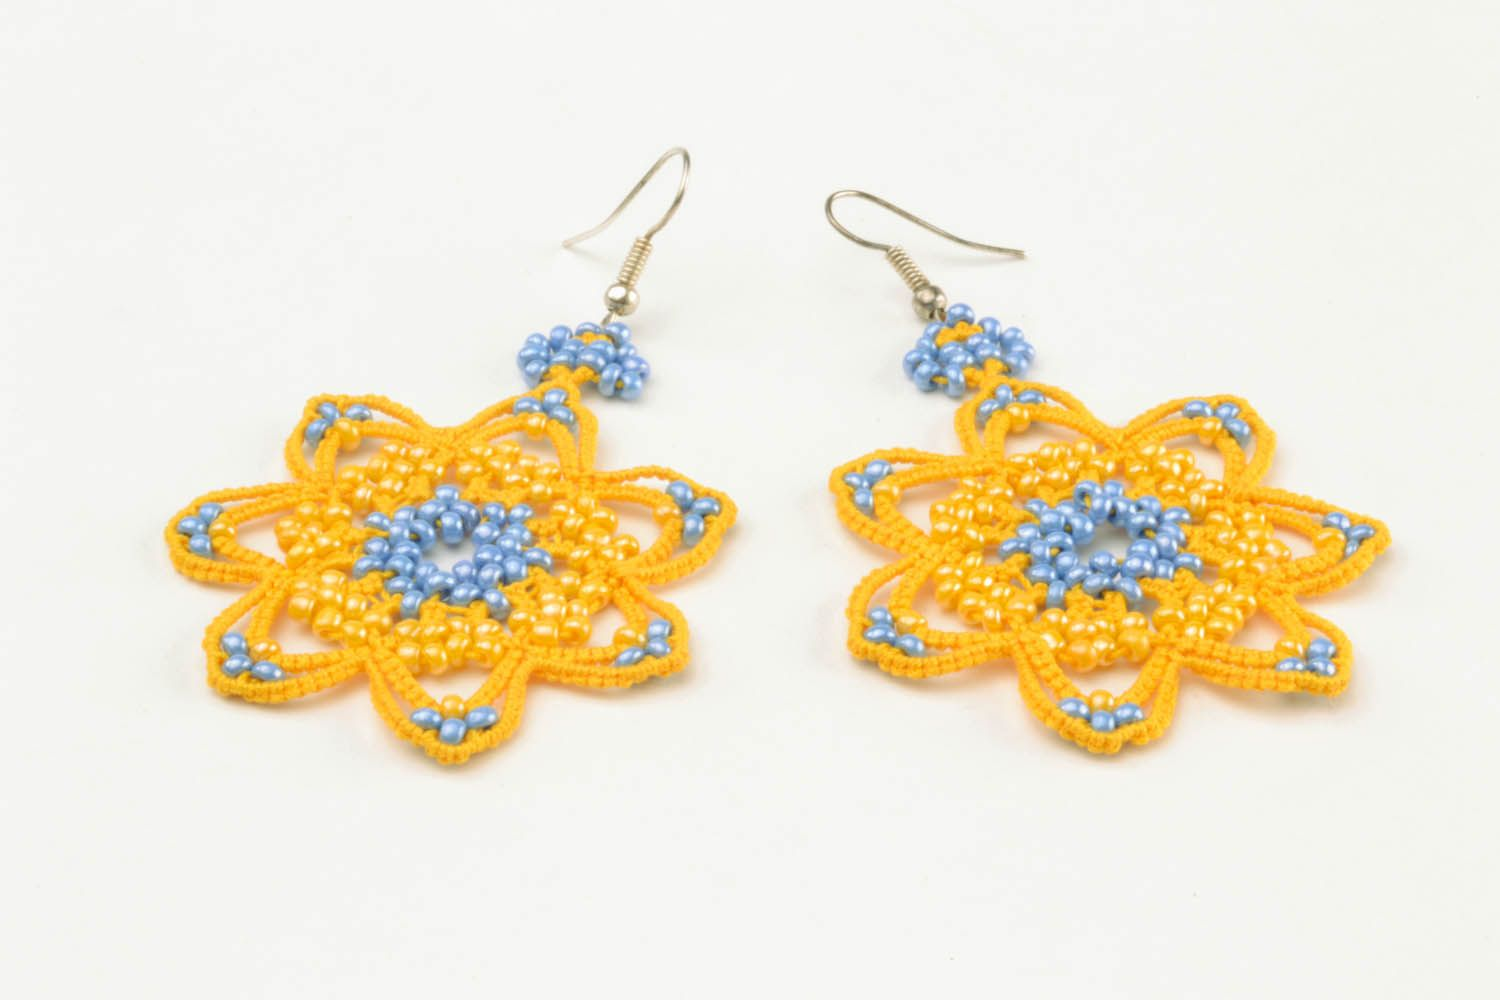 Lace earrings made using tatting technique photo 4